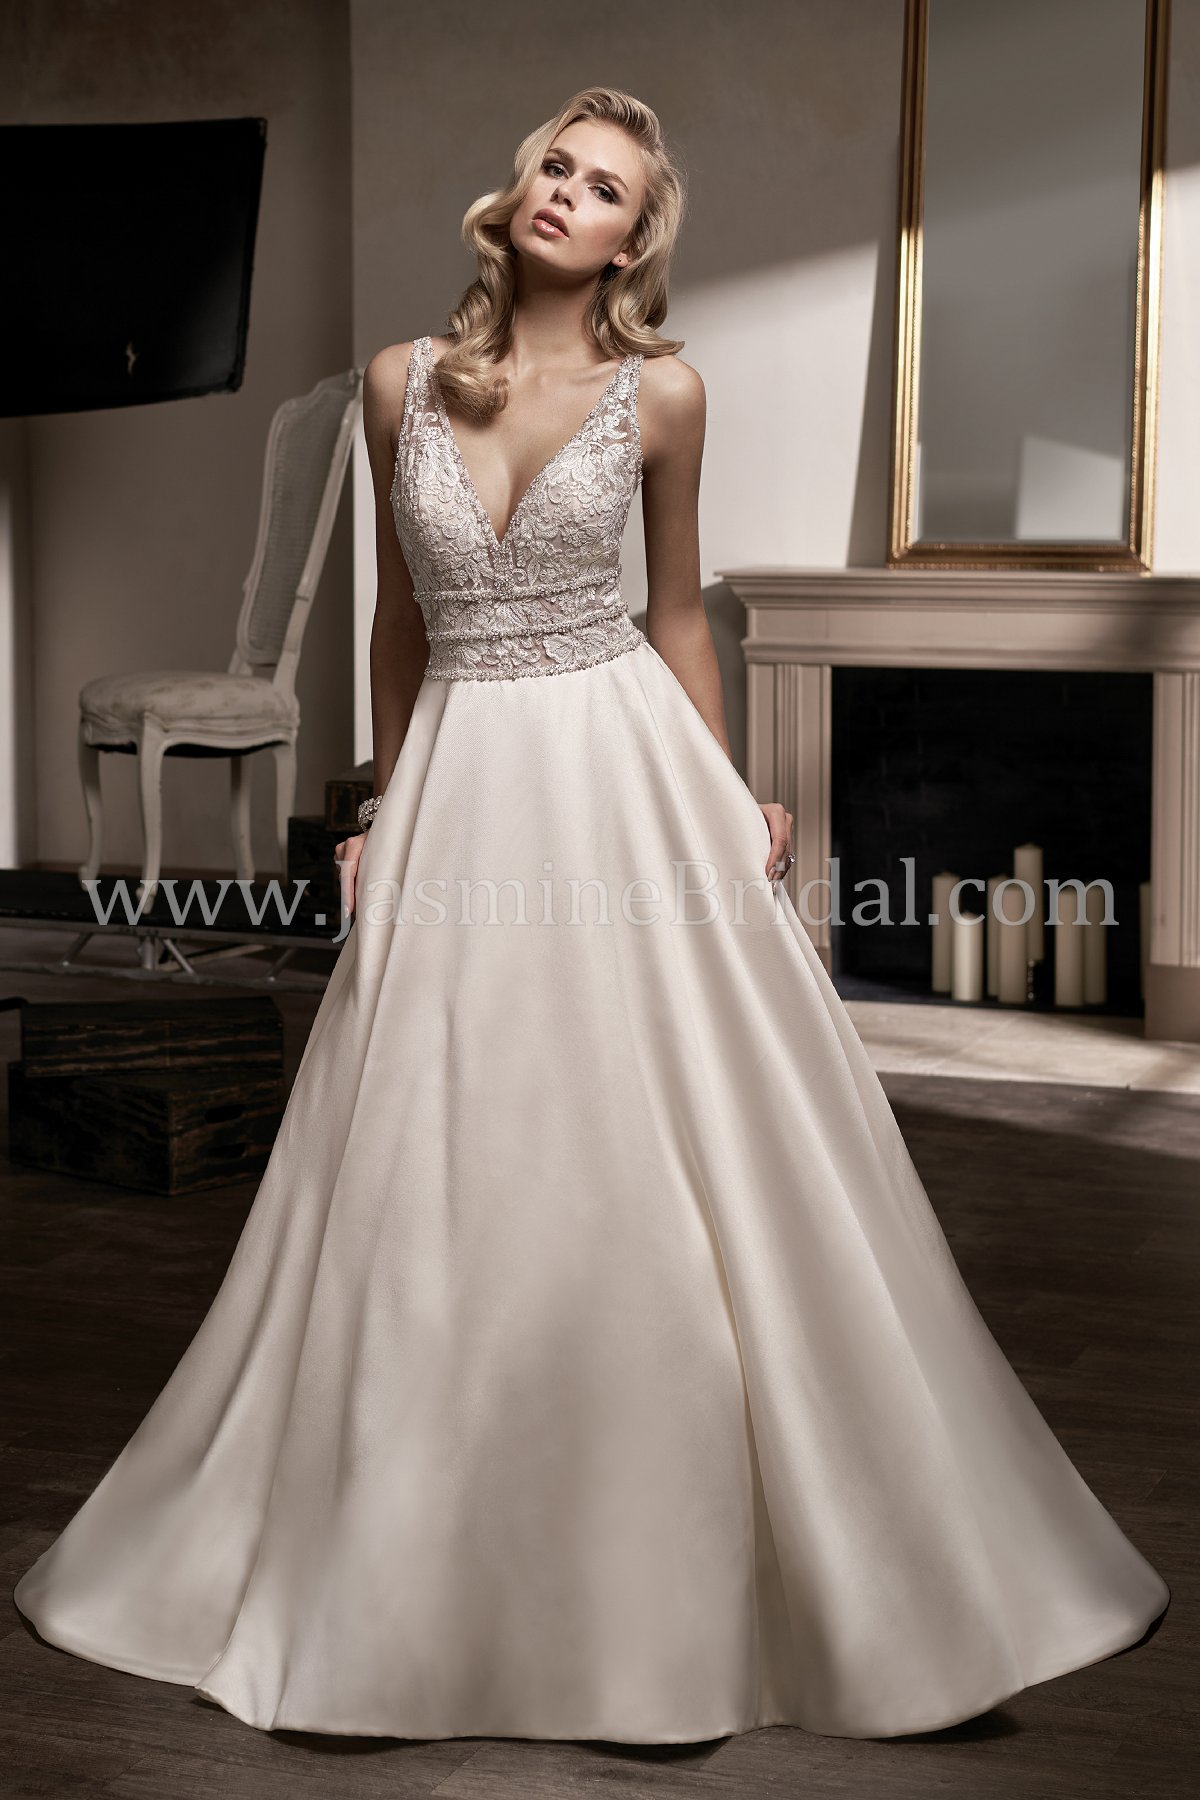 Fullsize Of Organza Bridal Gown